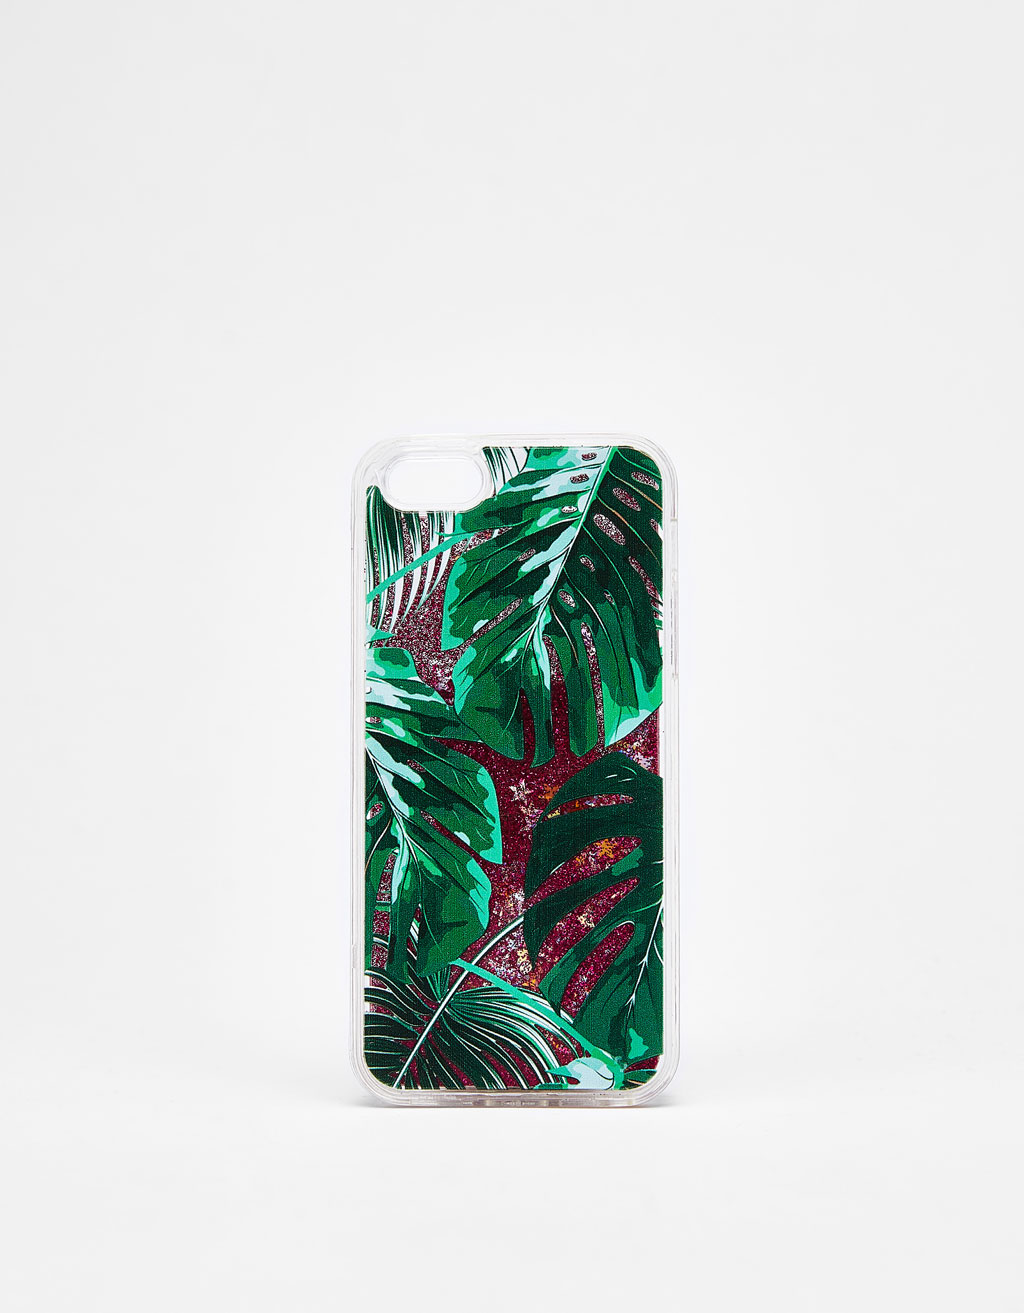 Carcasa tropical iPhone 5/5s